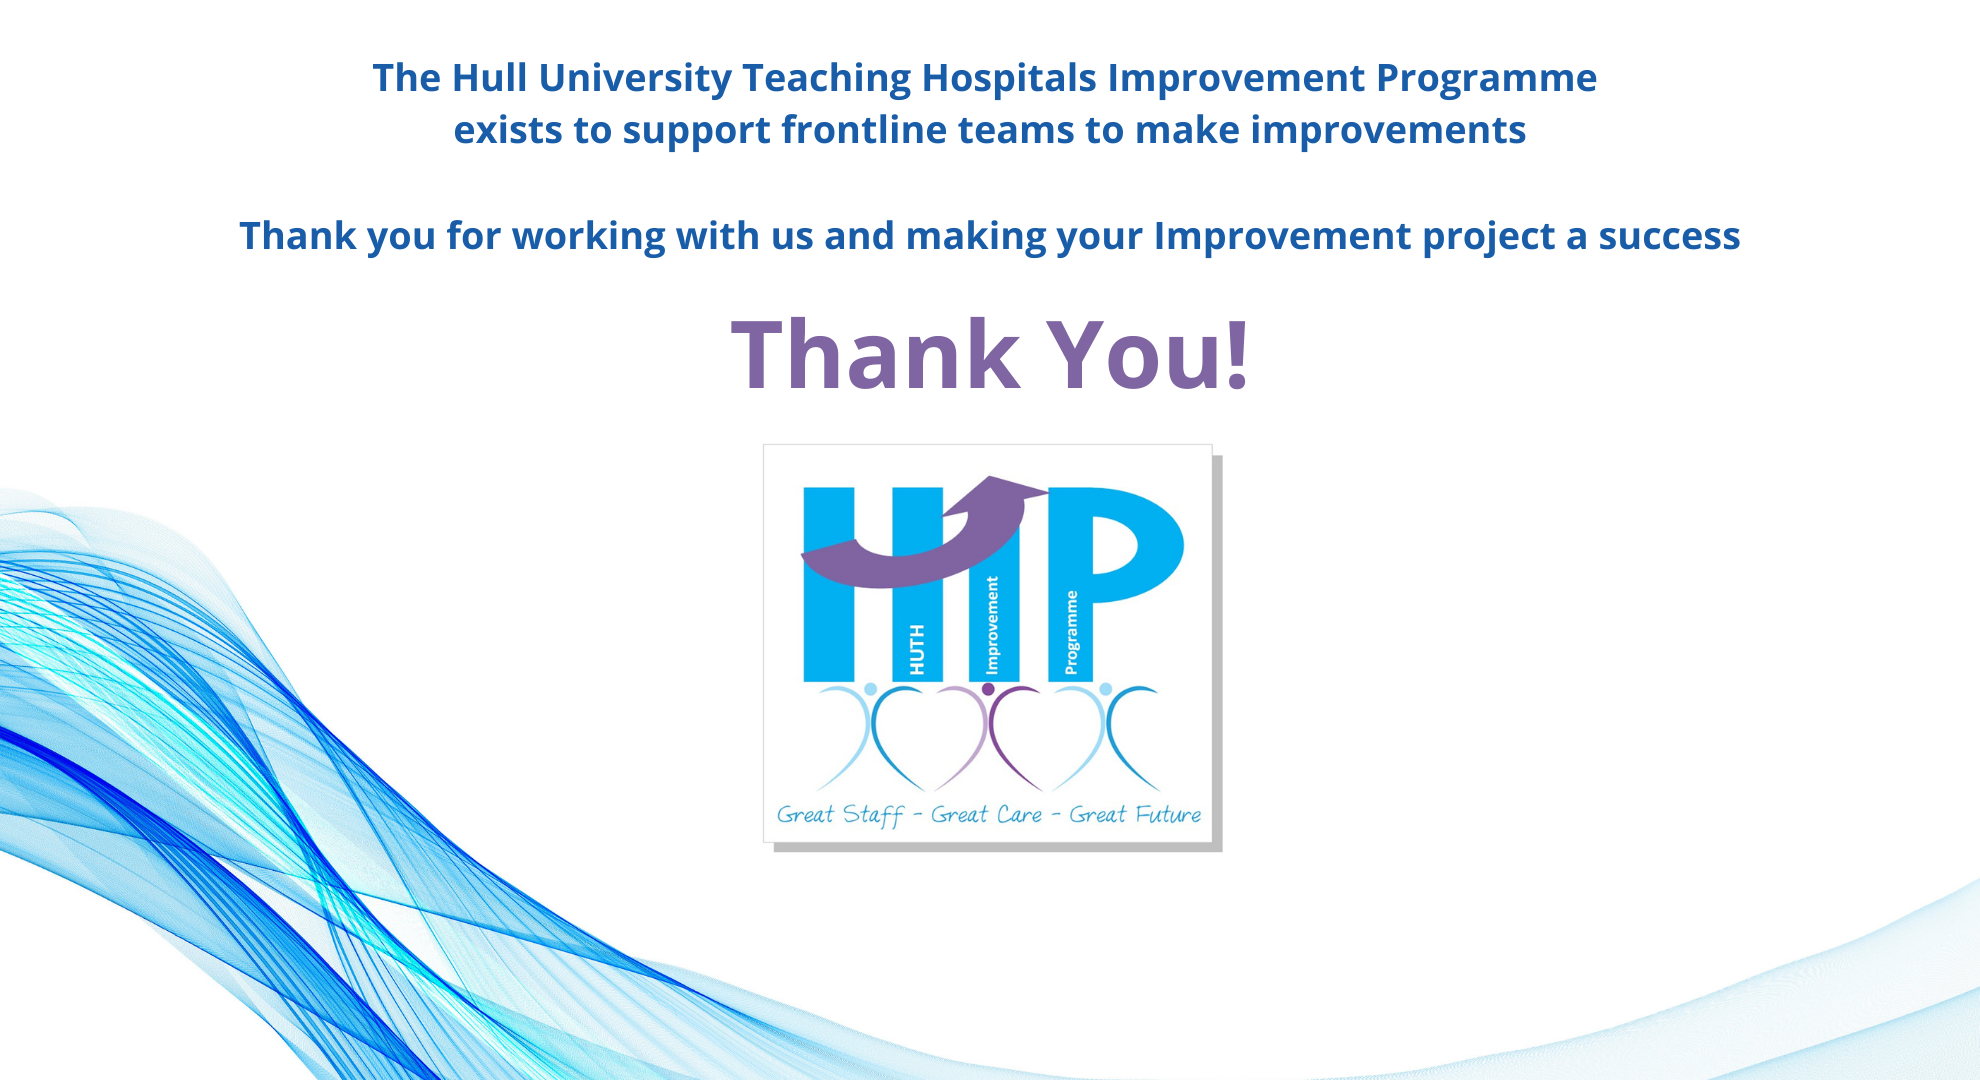 The HUTH Improvement Programme exists to support frontline teams to make improvements, Thank you for working with us and making your improvement project a success.